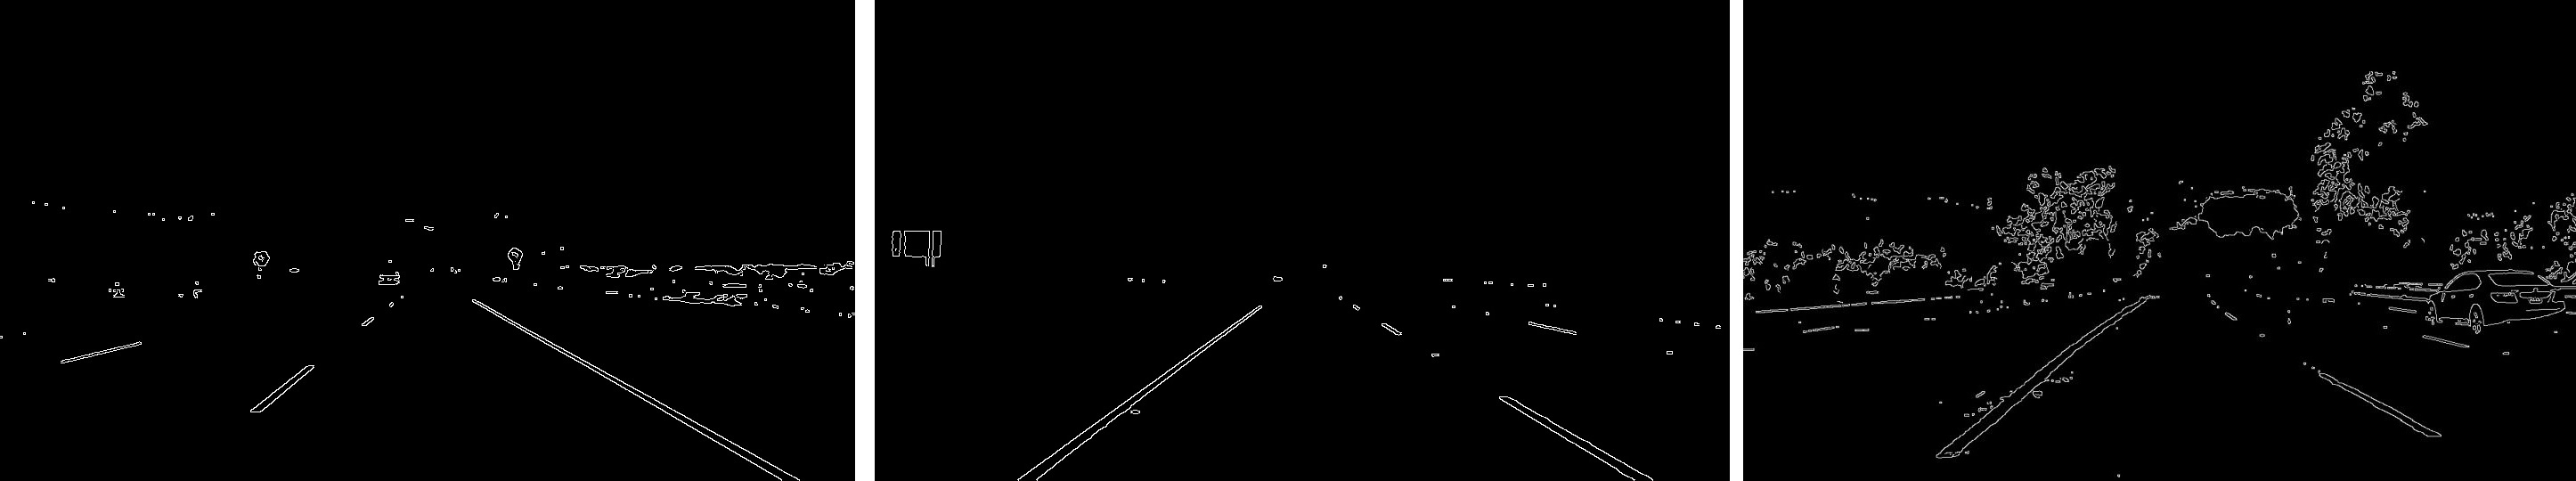 First step to stay on track - lane lines detection - ProggBlogg